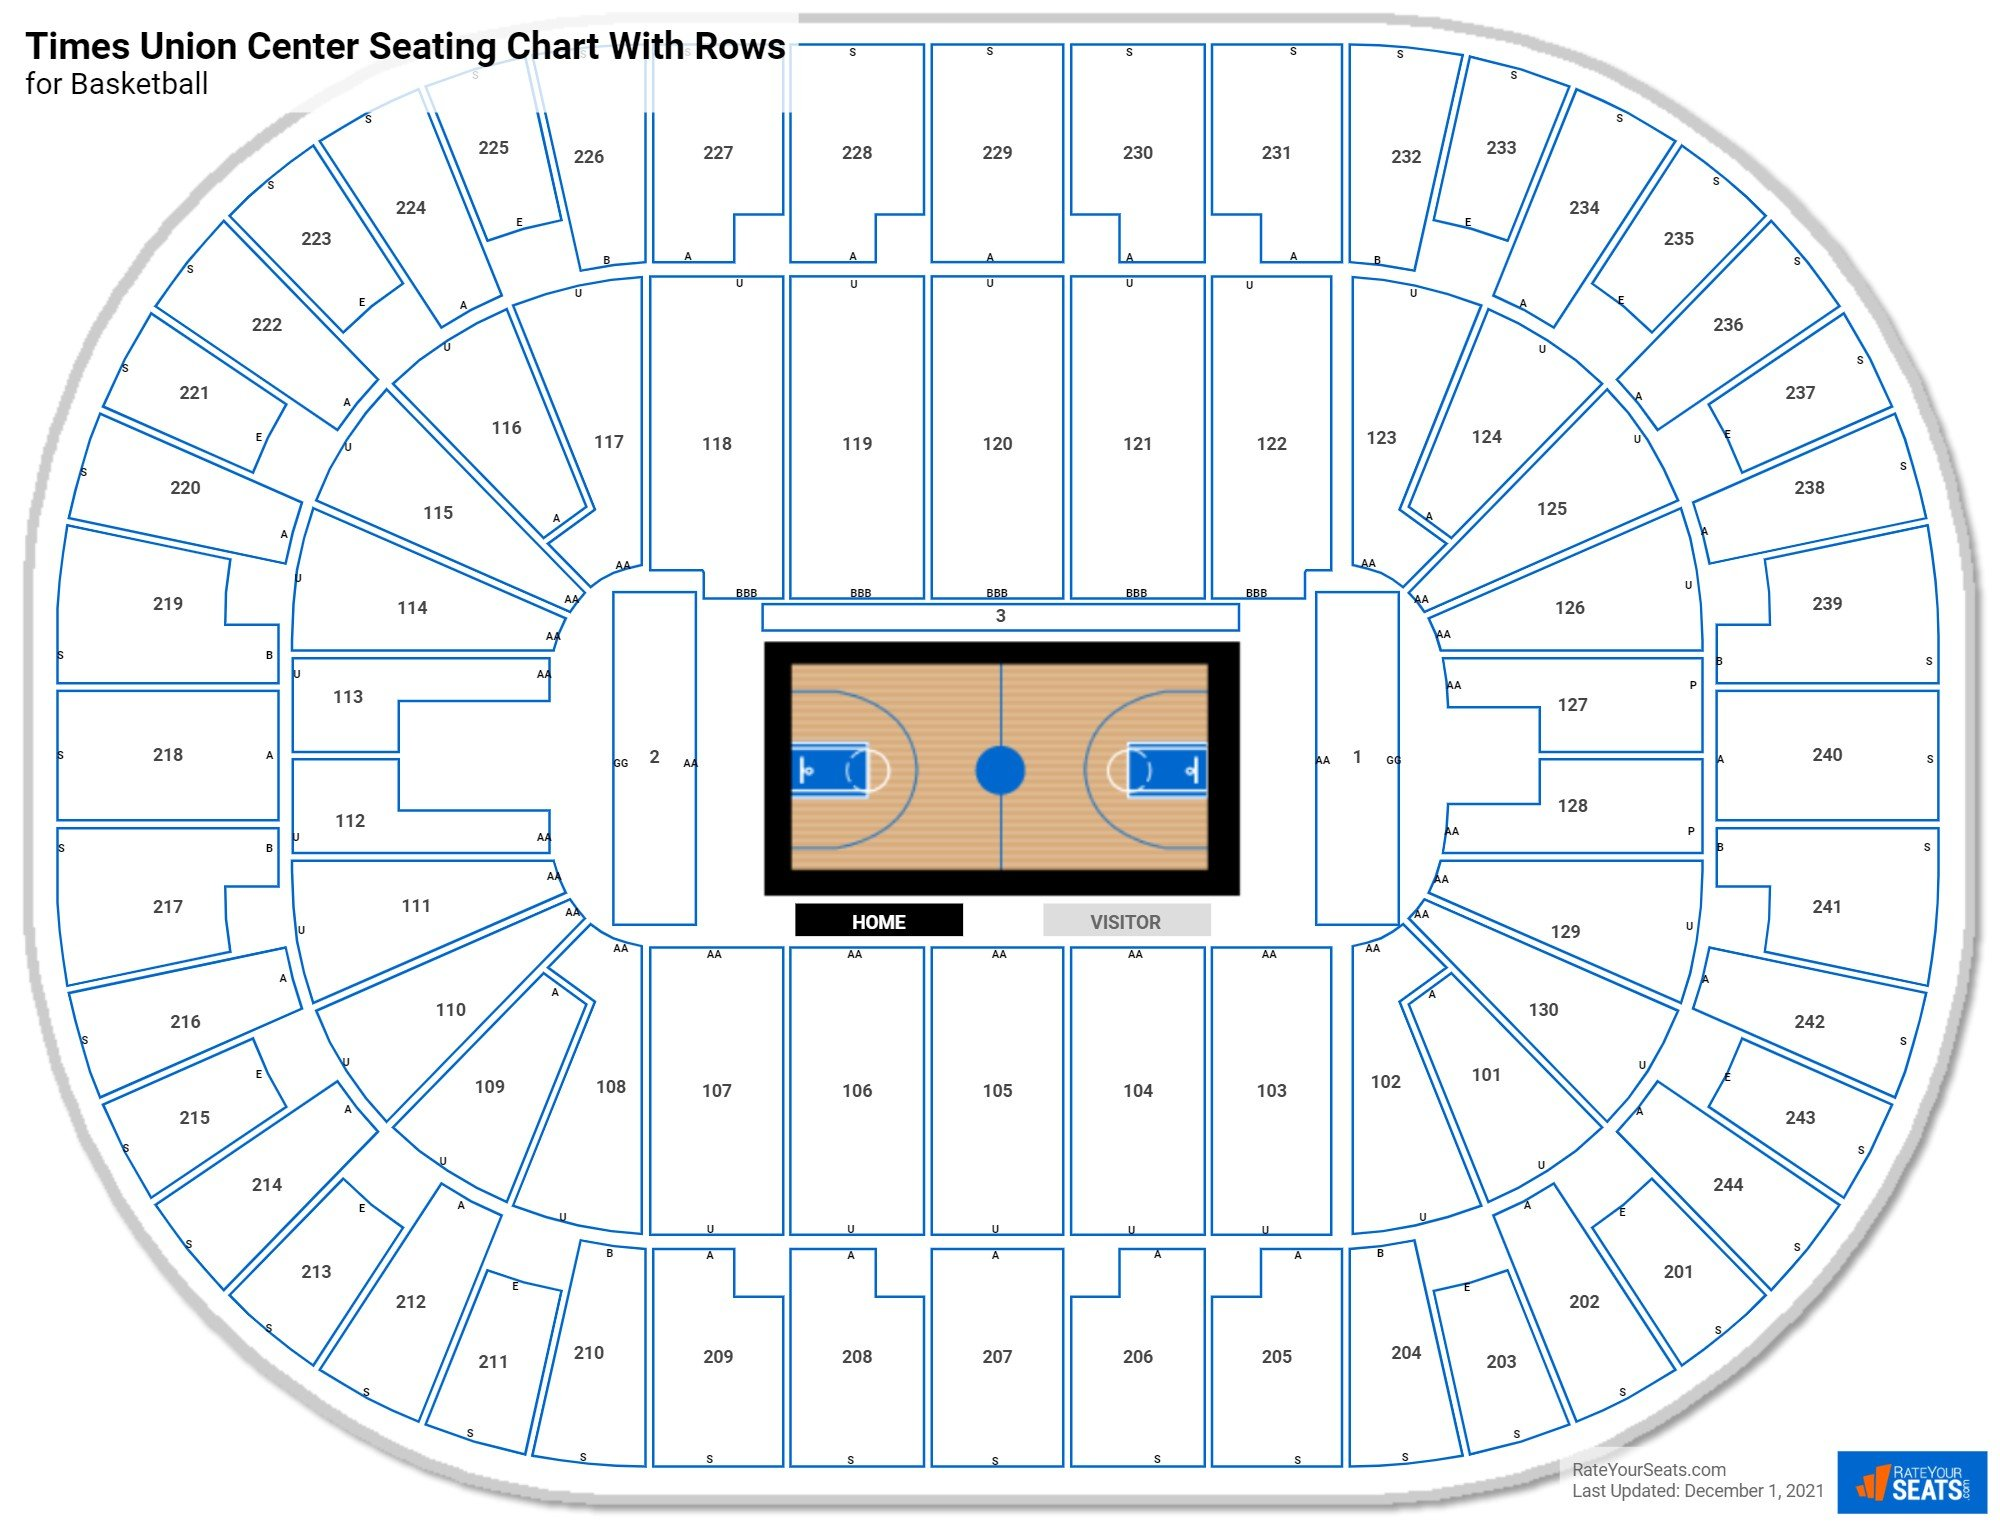 Times Union Center seating chart with rows basketball